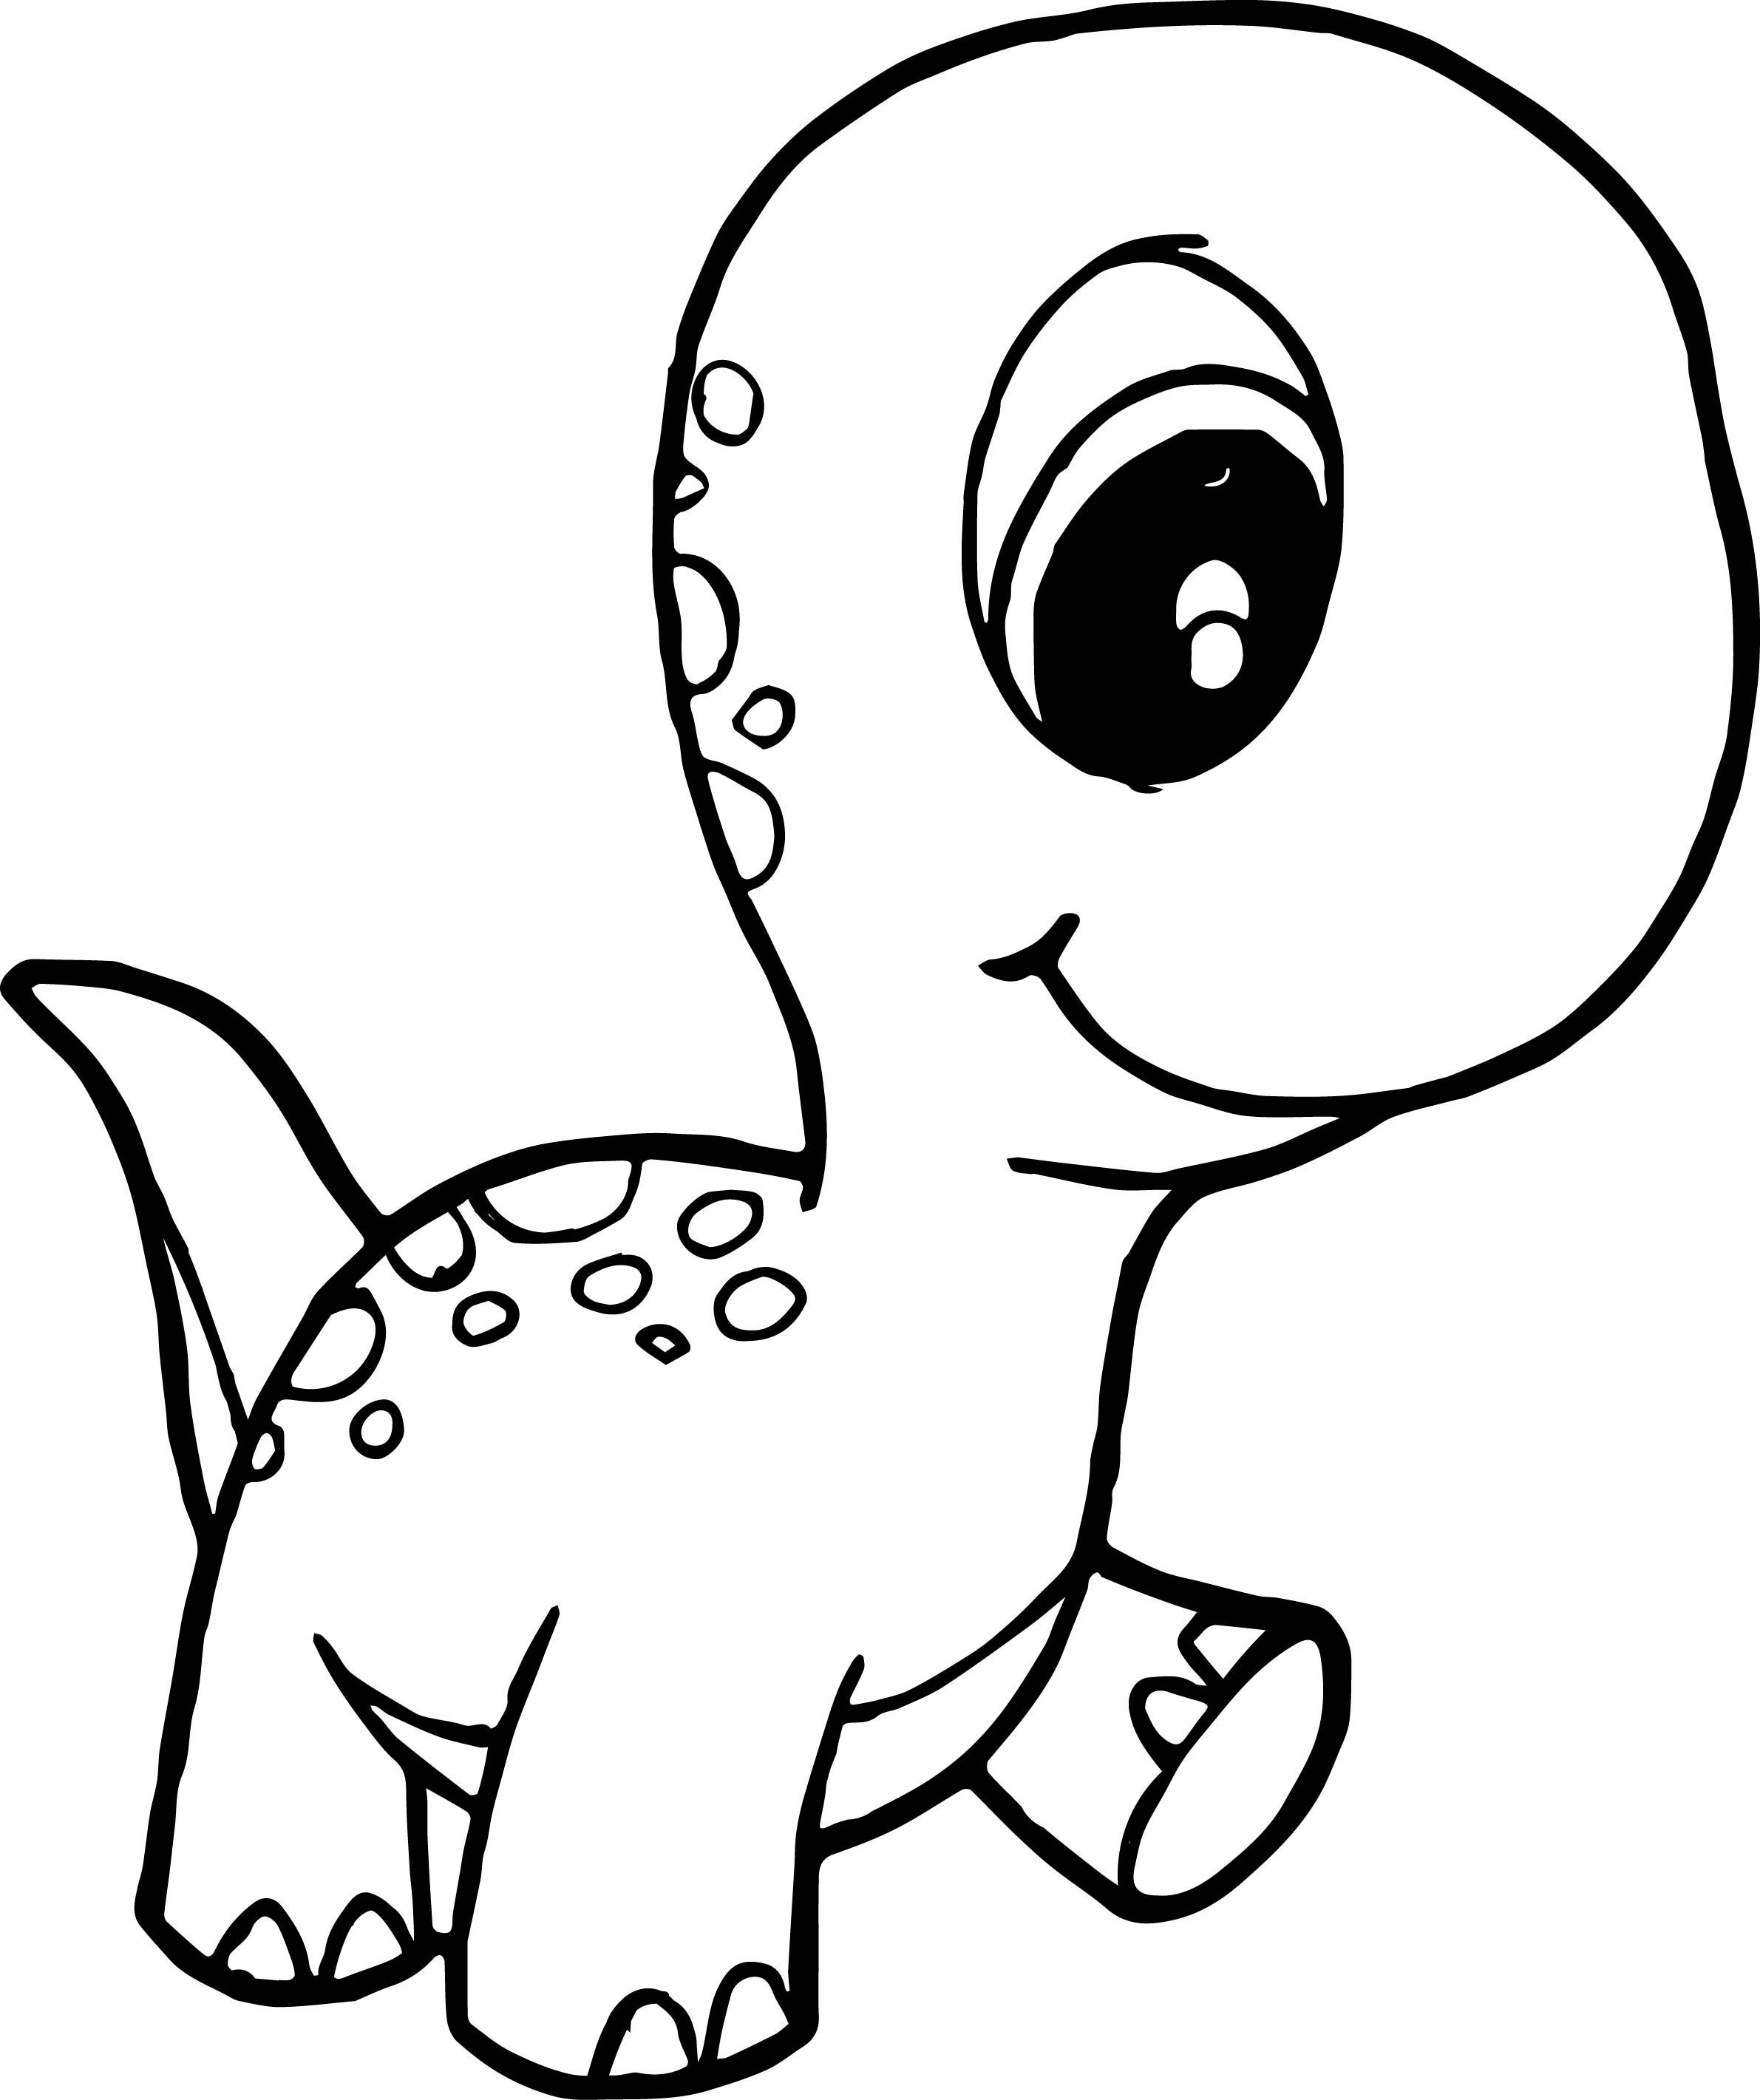 awesome Dinosaur Cute Baby Walking Coloring Page